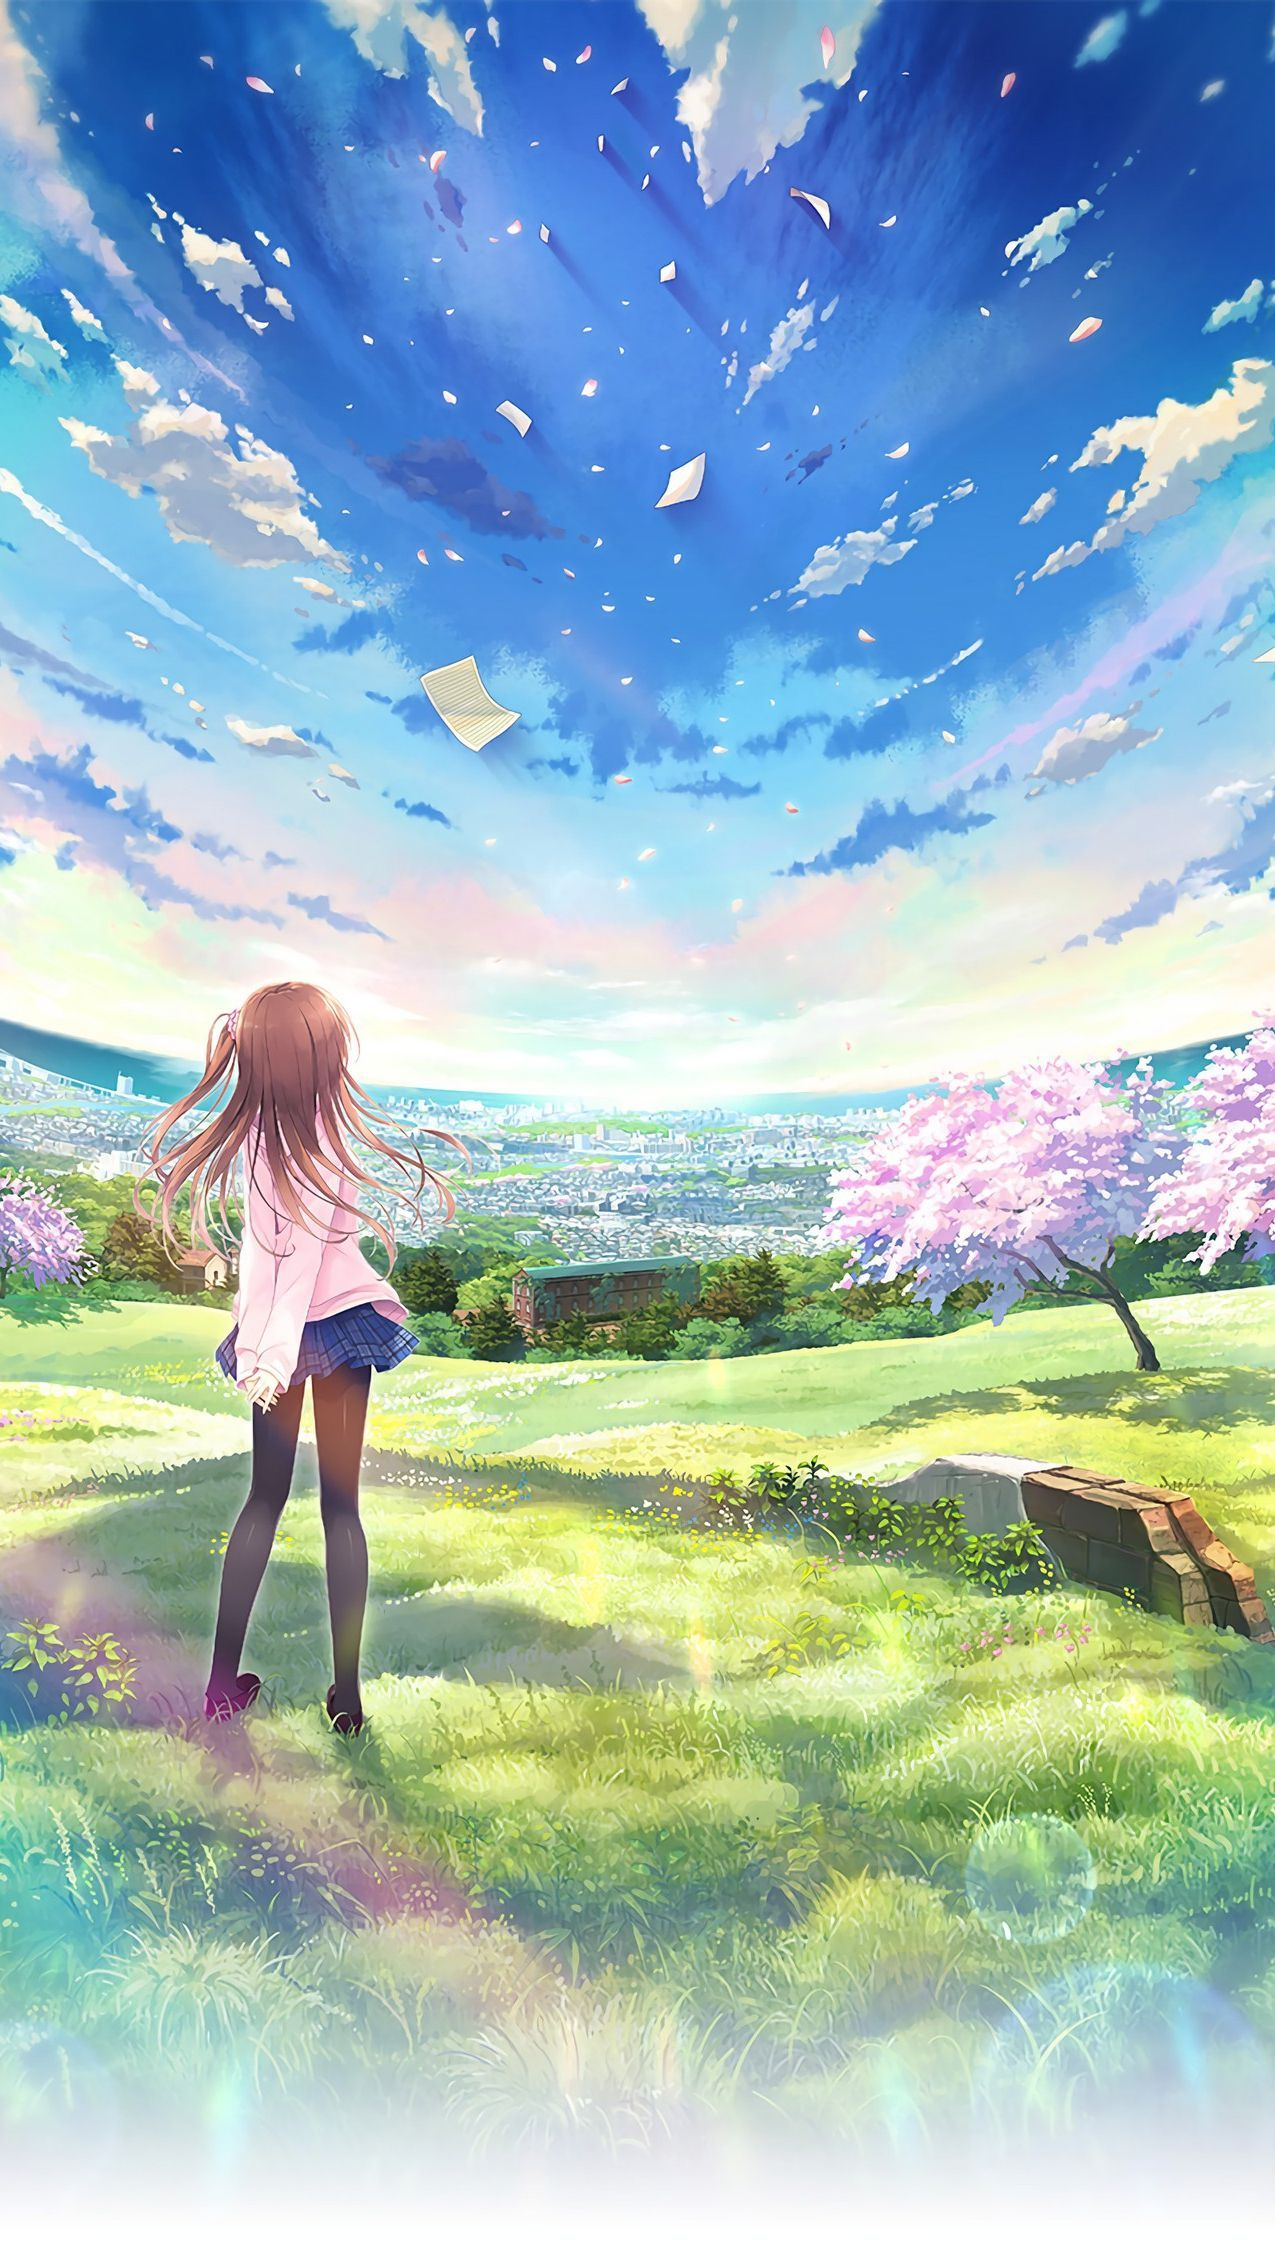 Anime World Wallpapers Top Free Anime World Backgrounds Wallpaperaccess